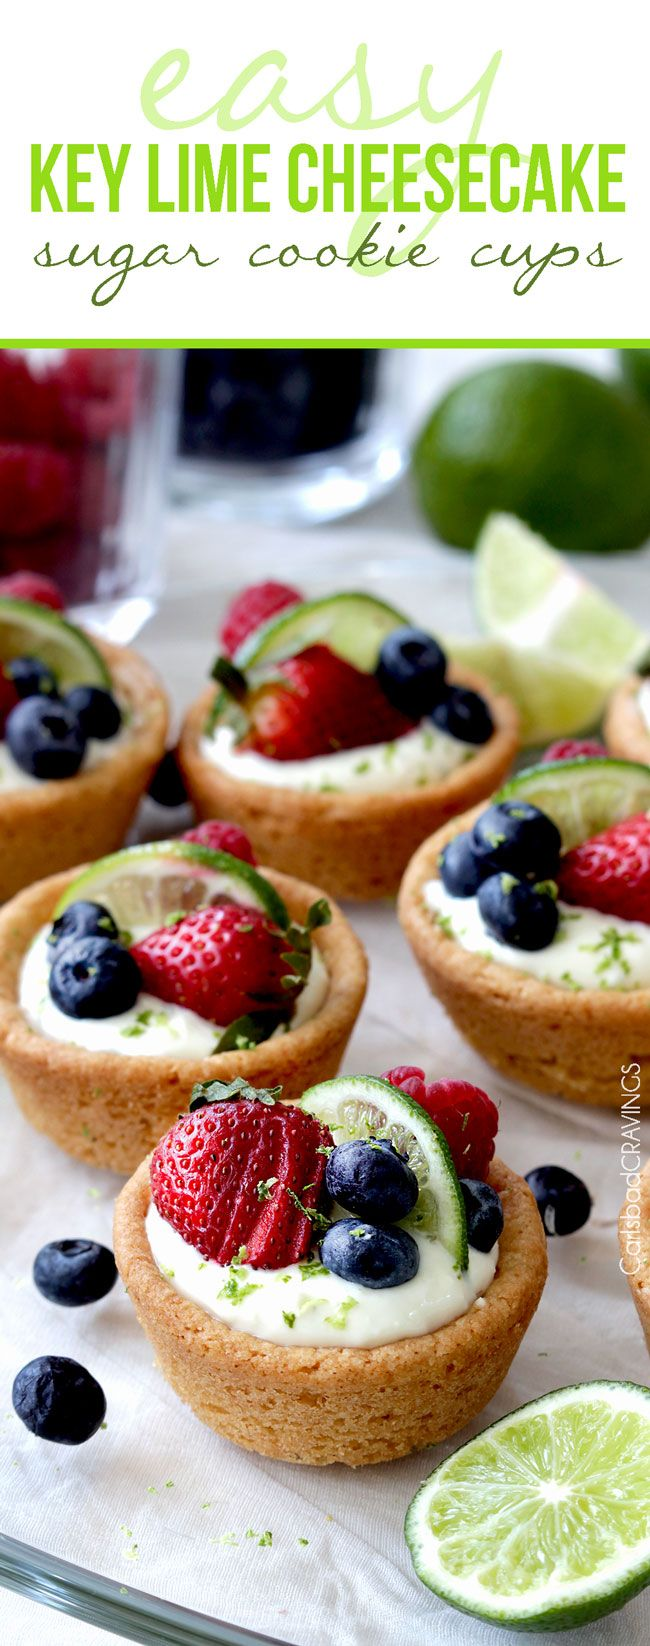 Key-Lime-Cheesecake-Sugar-Cookie-cups-main01